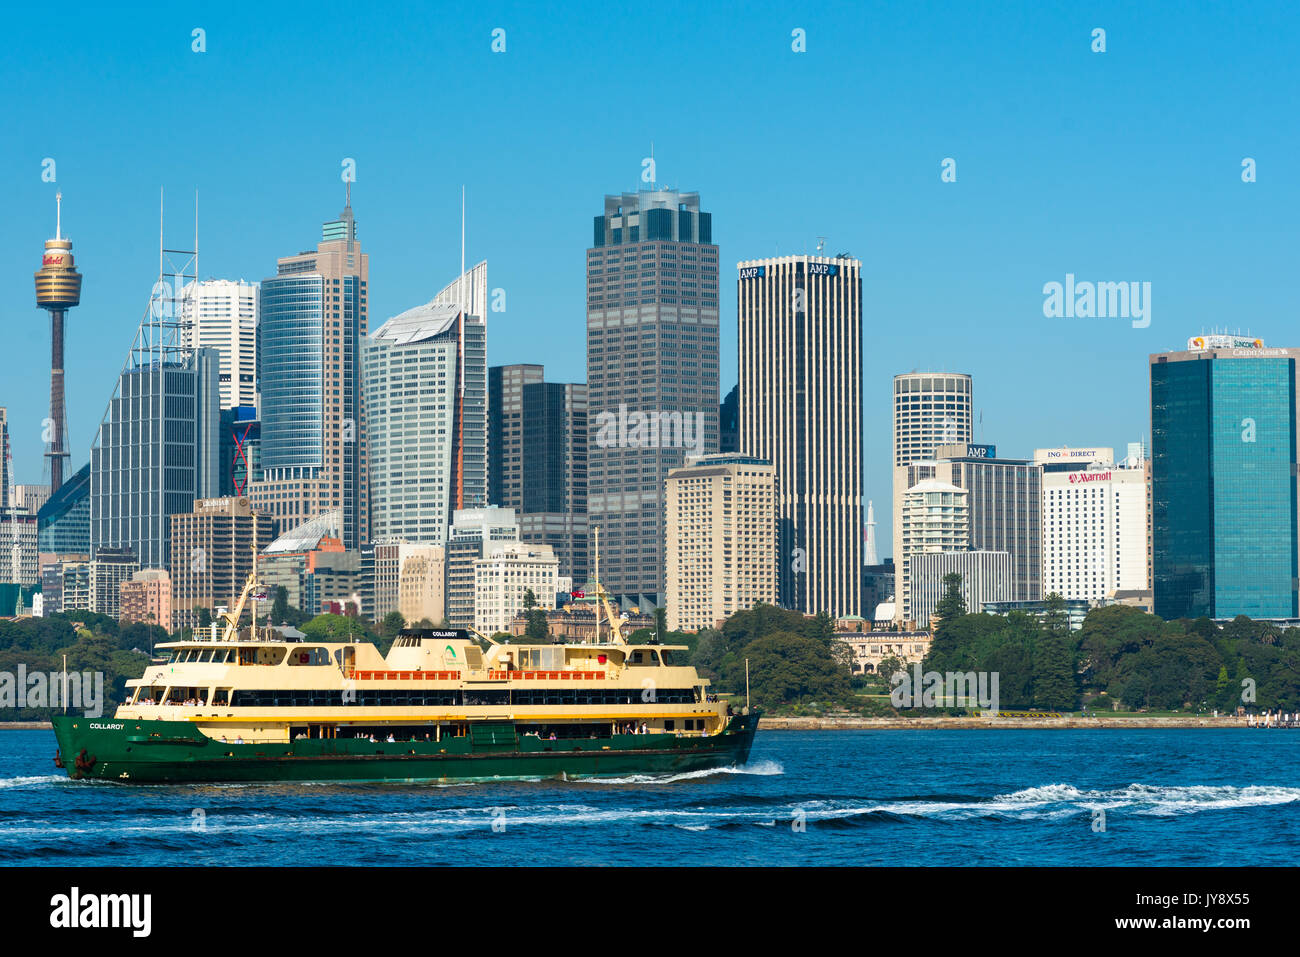 Sydney ferry in front of the city skyline. Sydney, New South Wales, Australia. Stock Photo